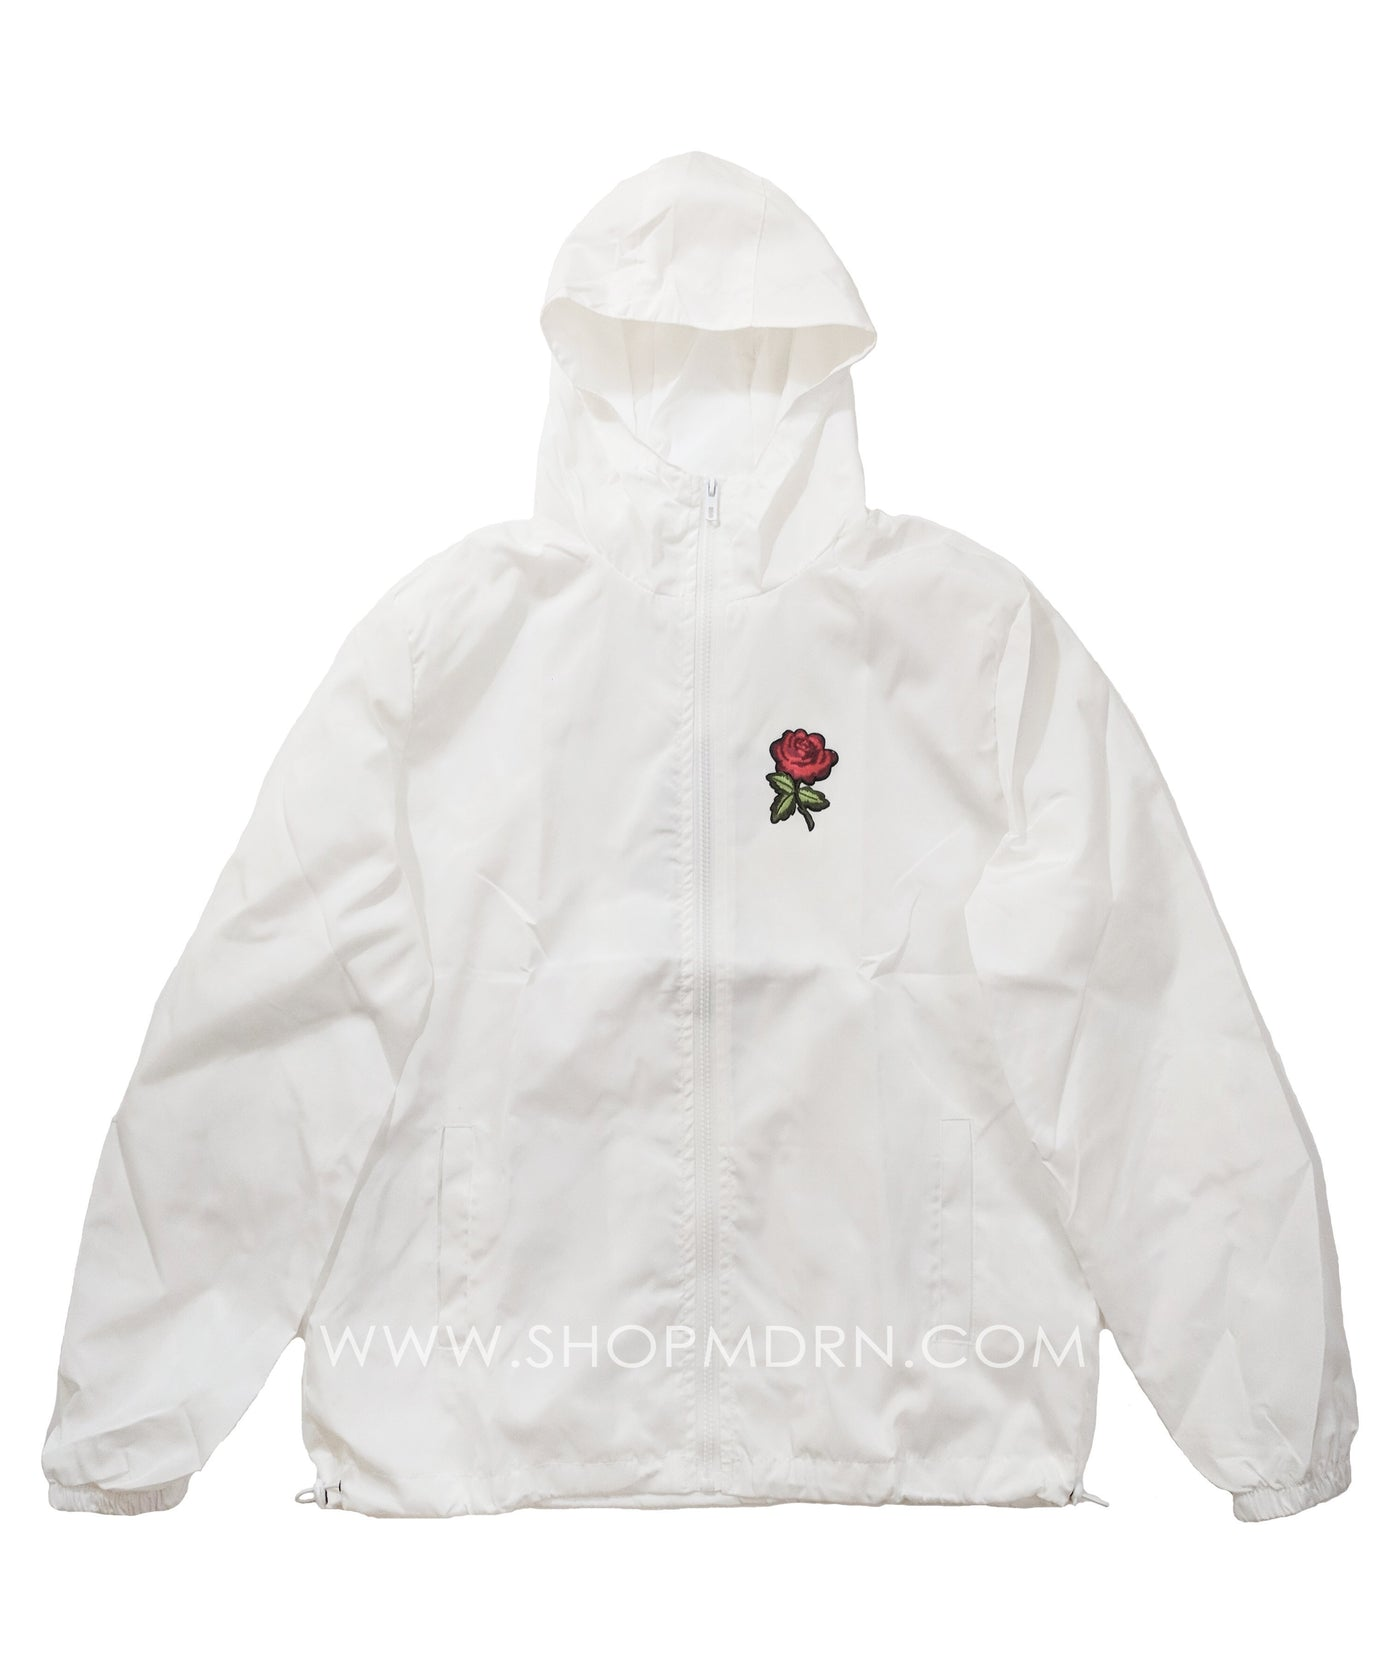 Windbreaker - Rose Windbreaker - White